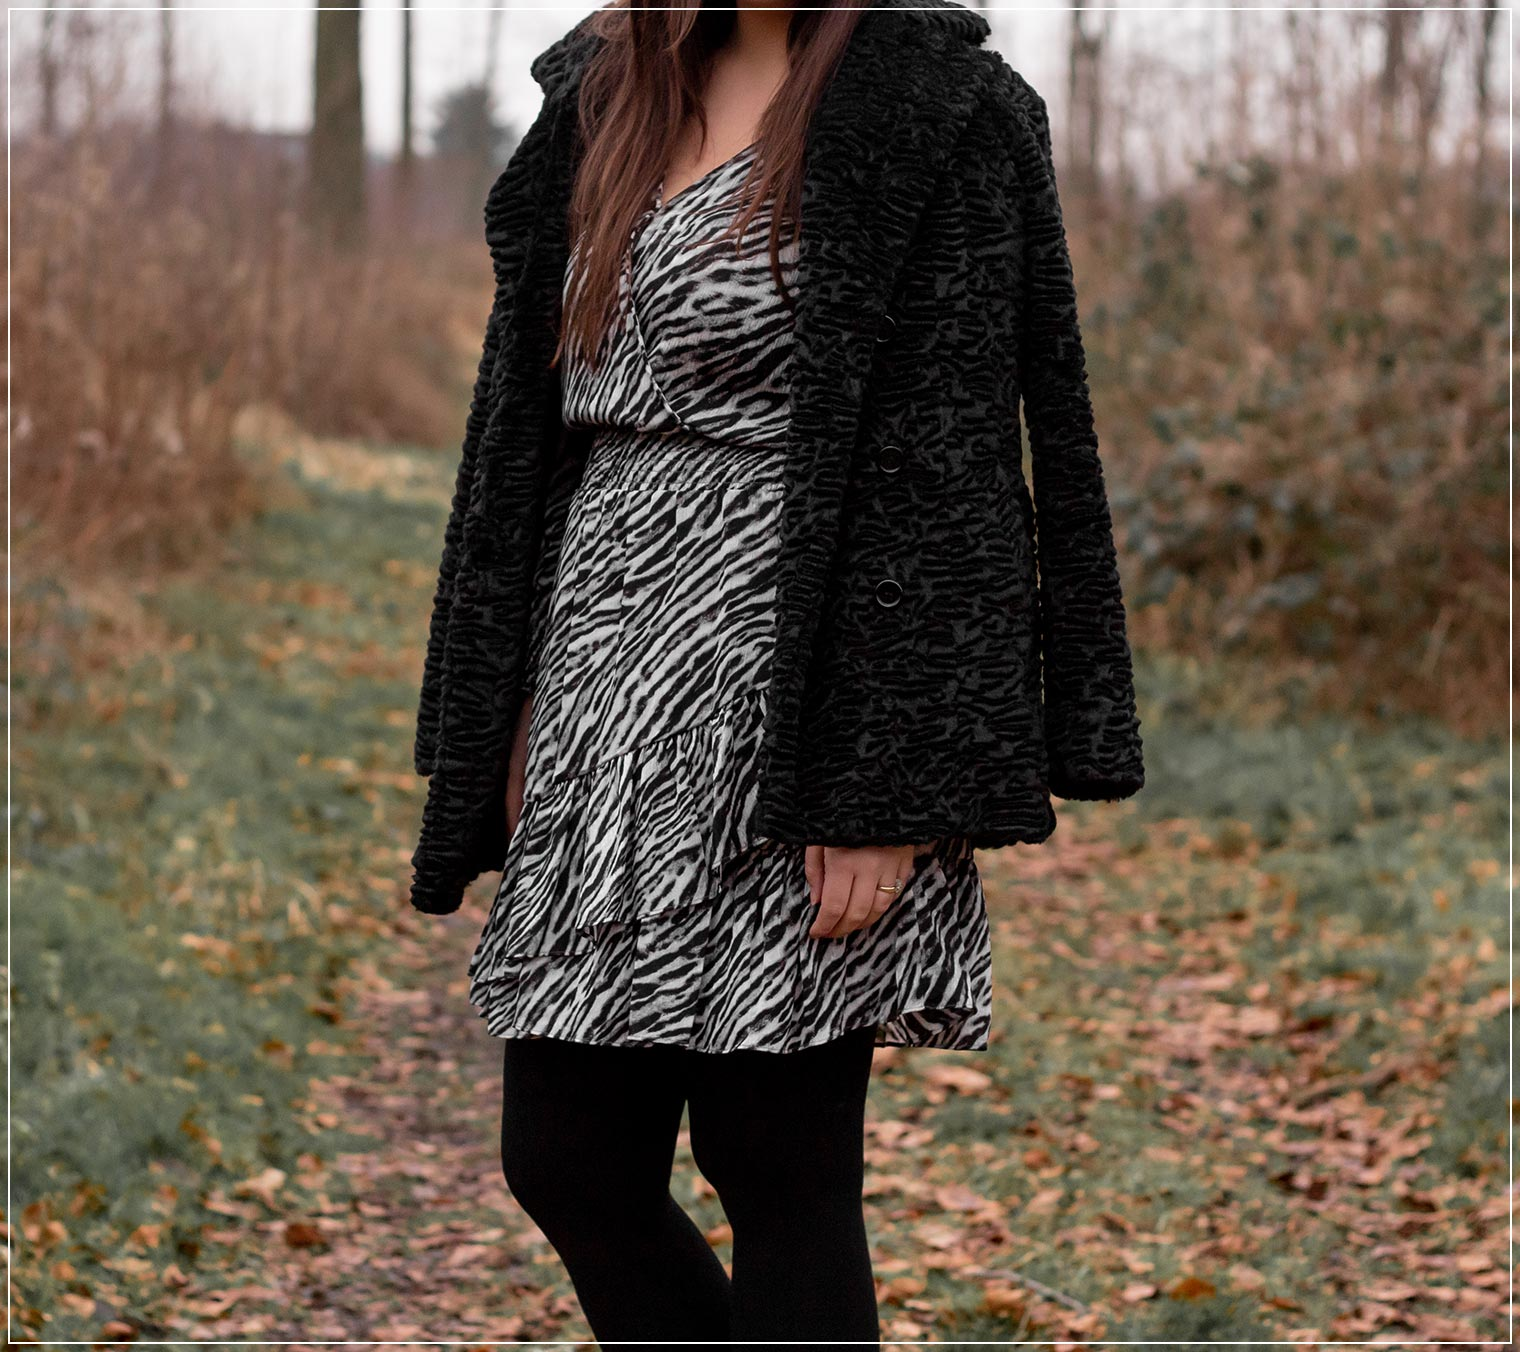 So stylst du einen Winterlook mit Animal-Print